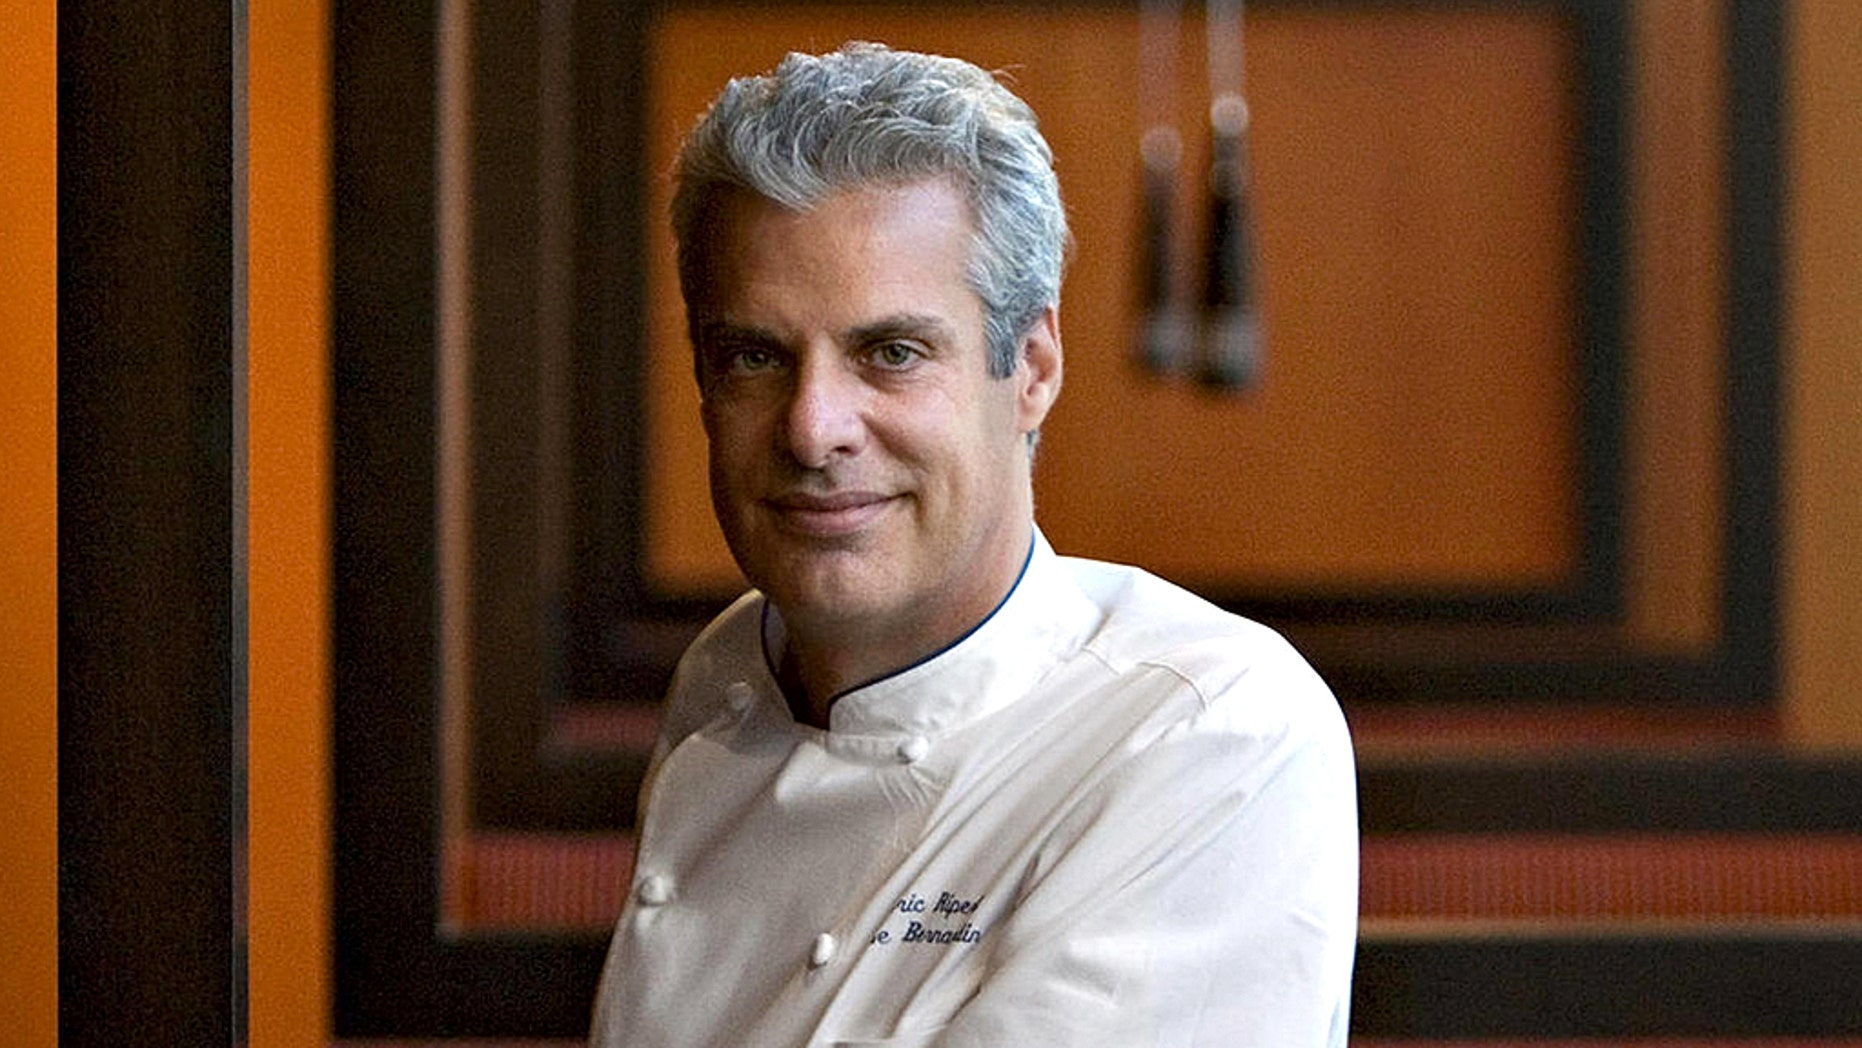 Eric Ripert, a close friend of Anthony Bourdain's, reportedly found the celebrity chef after his apparent suicide.